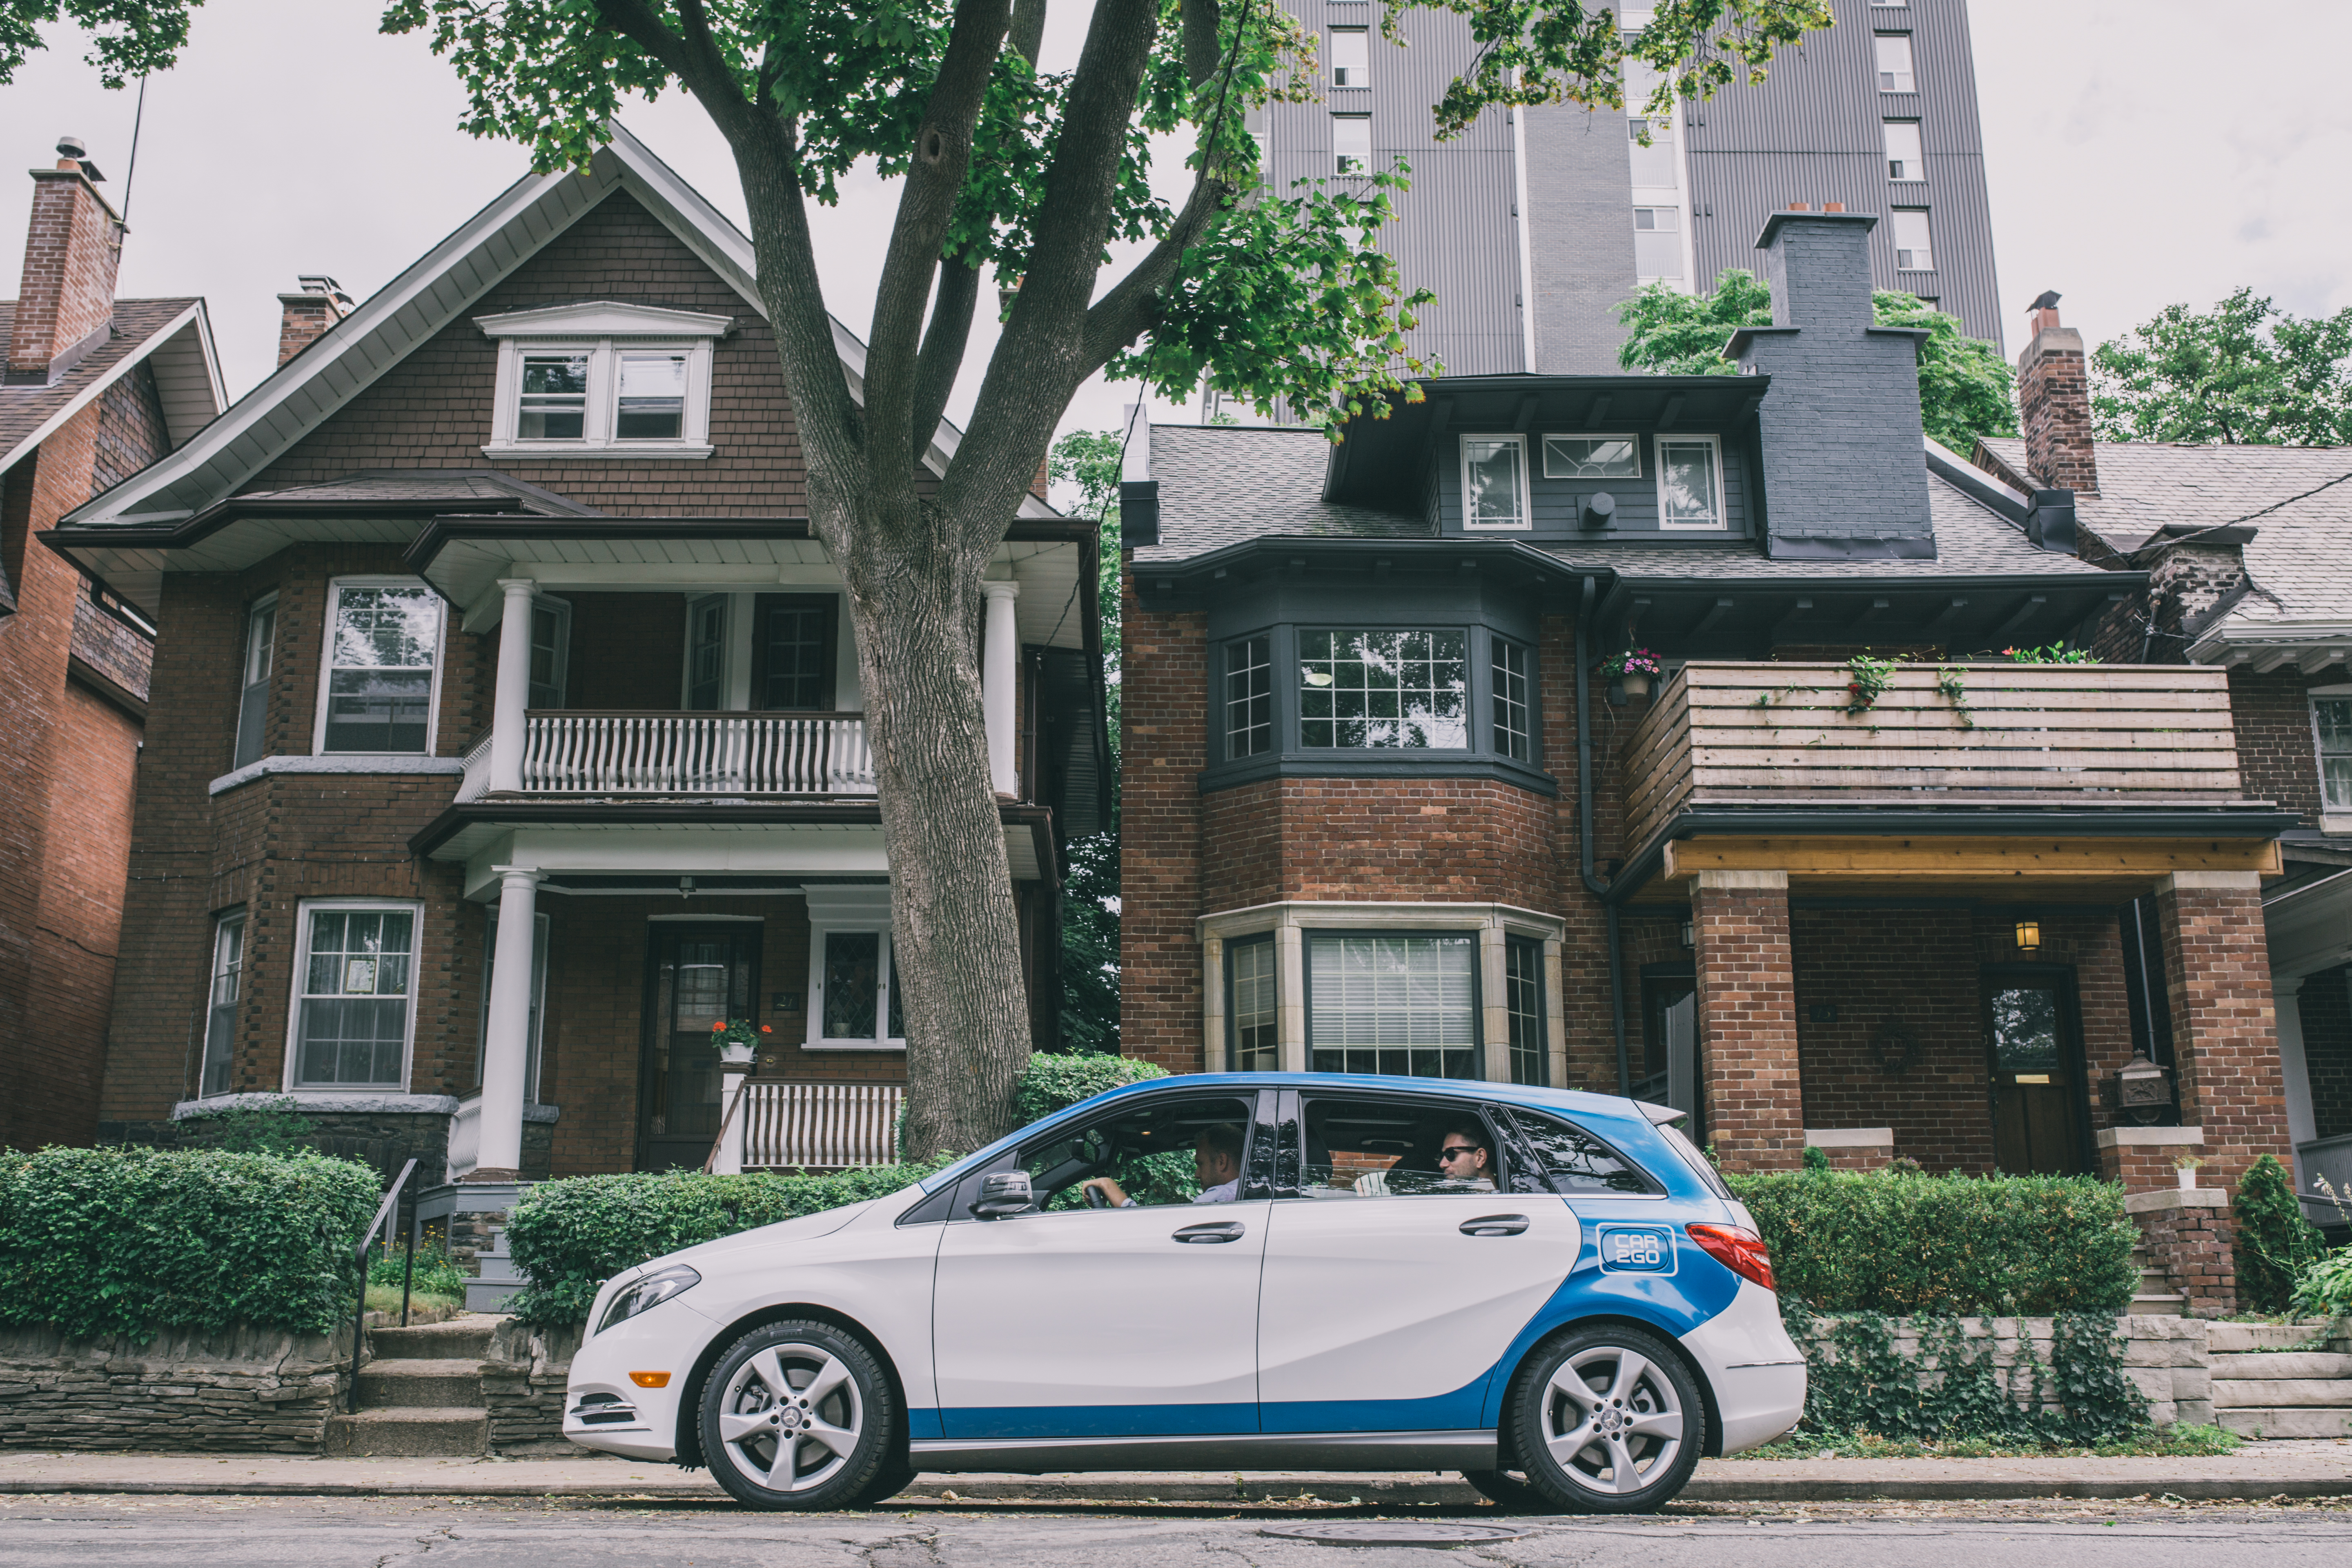 Carsharing company car2go is expanding beyond the two-seater smart fortwo vehicle. The company announced it will introduce four-door Mercedes B-class vehicles to its fleet in Toronto, Vancouver, and Calgary.